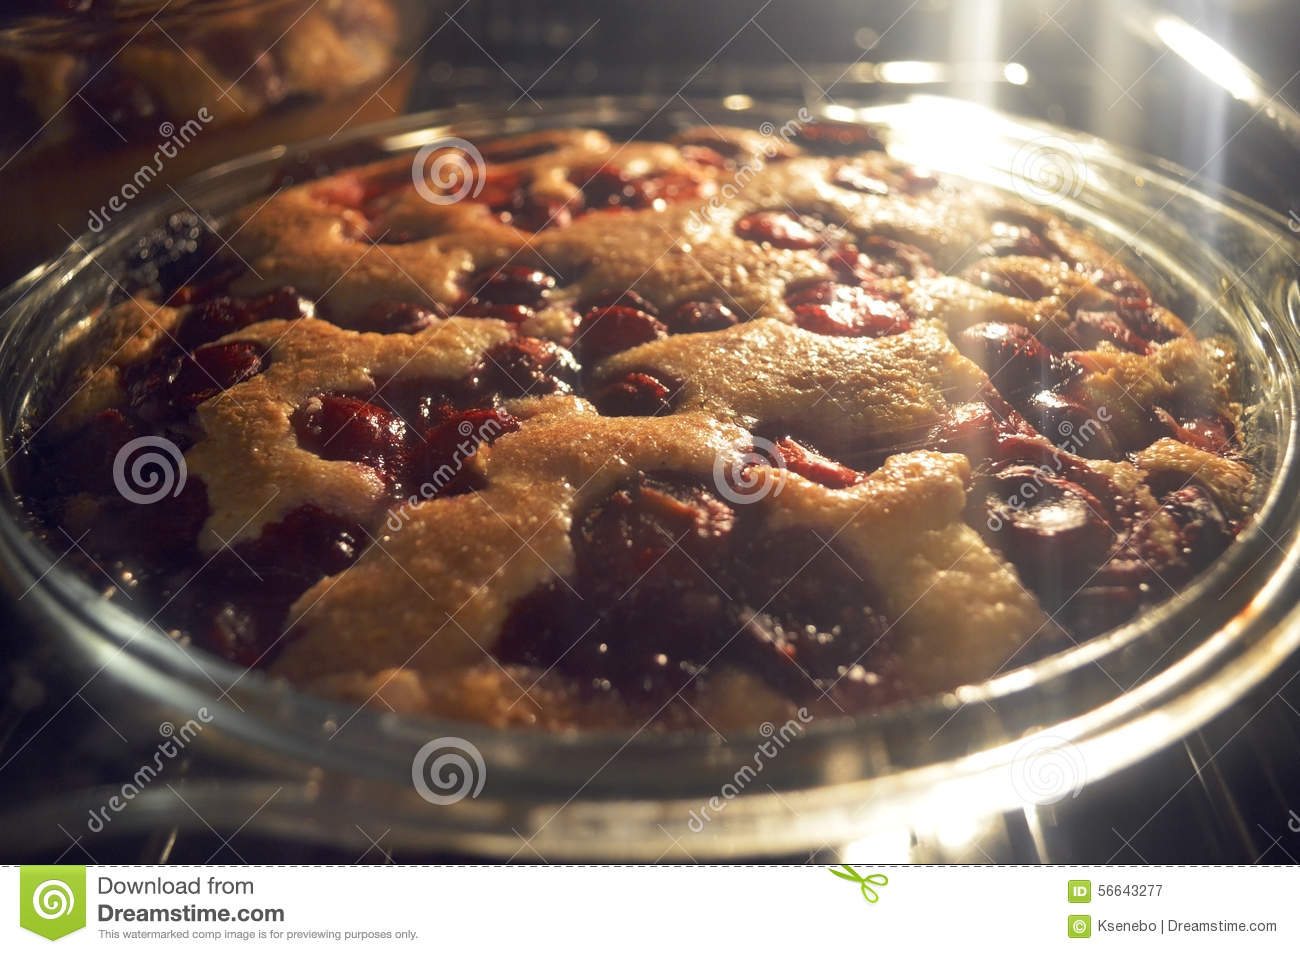 Baking Pie With Cherry In Oven Stock Photo - Image: 56643277